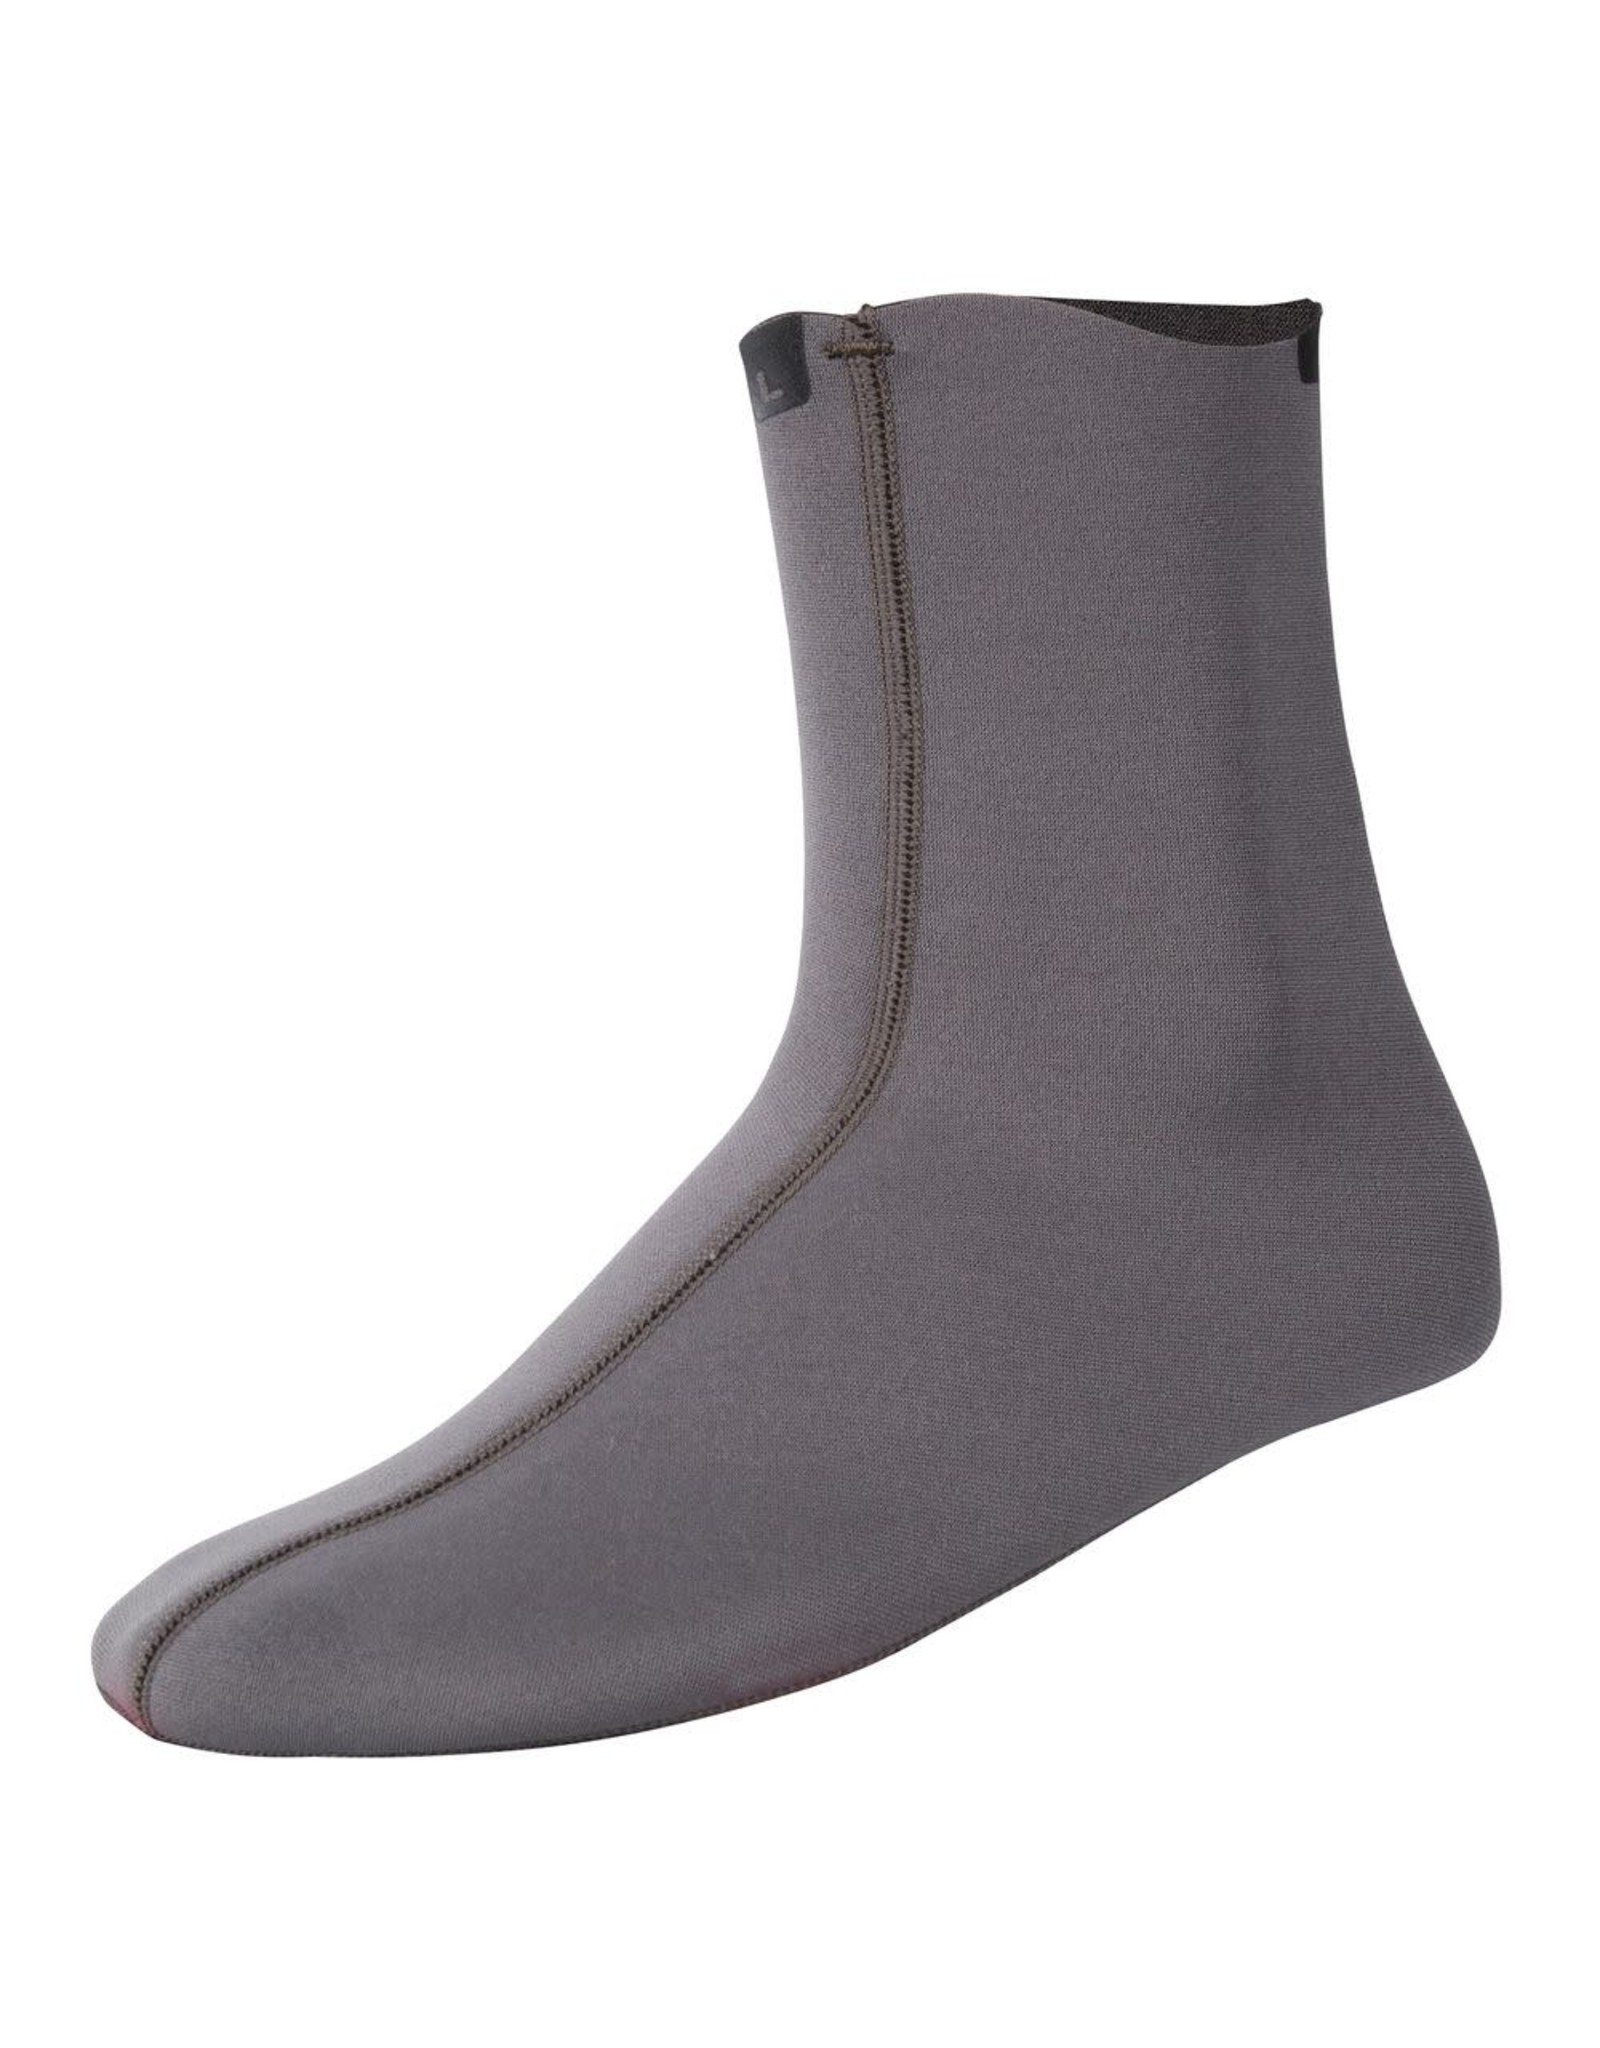 NRS NRS Wetsocks 2mm